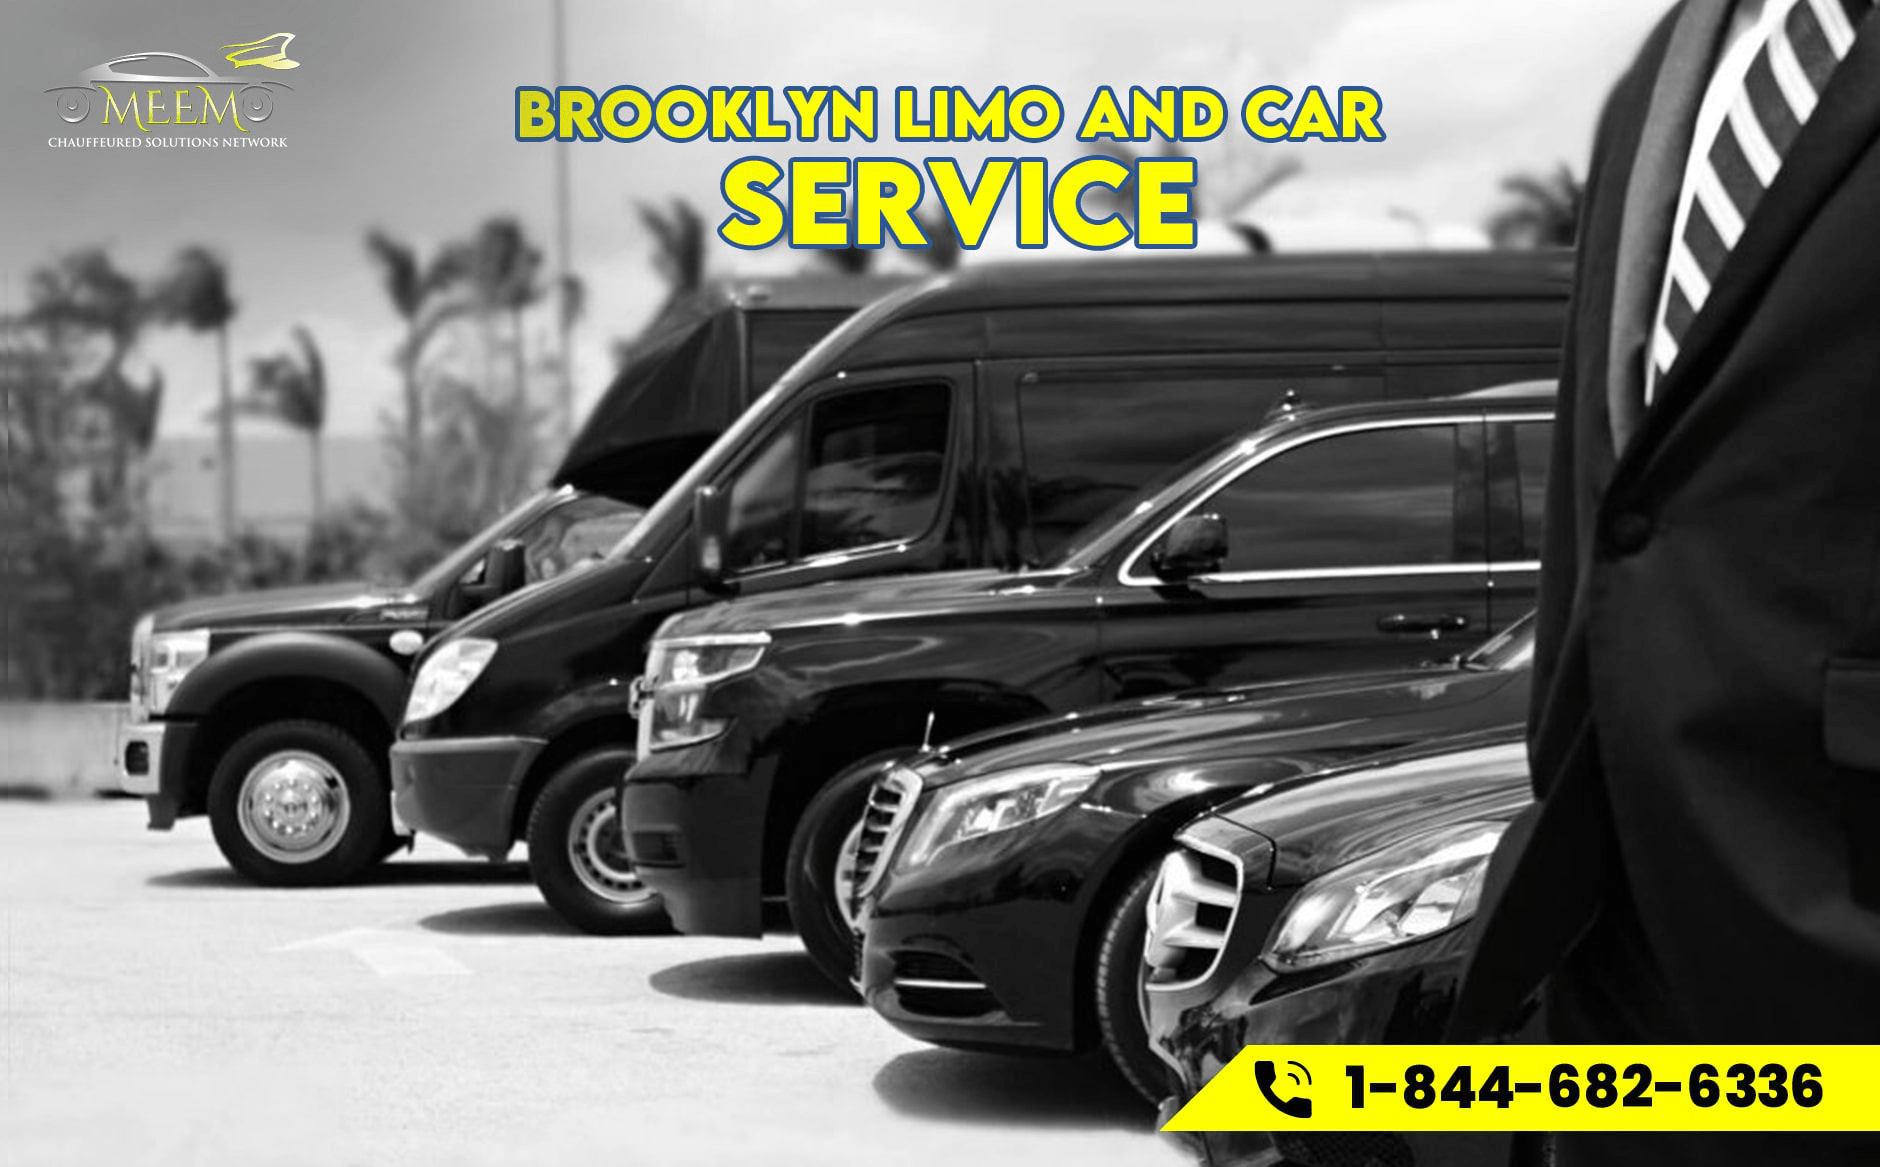 Limo and Car Service in Bronx